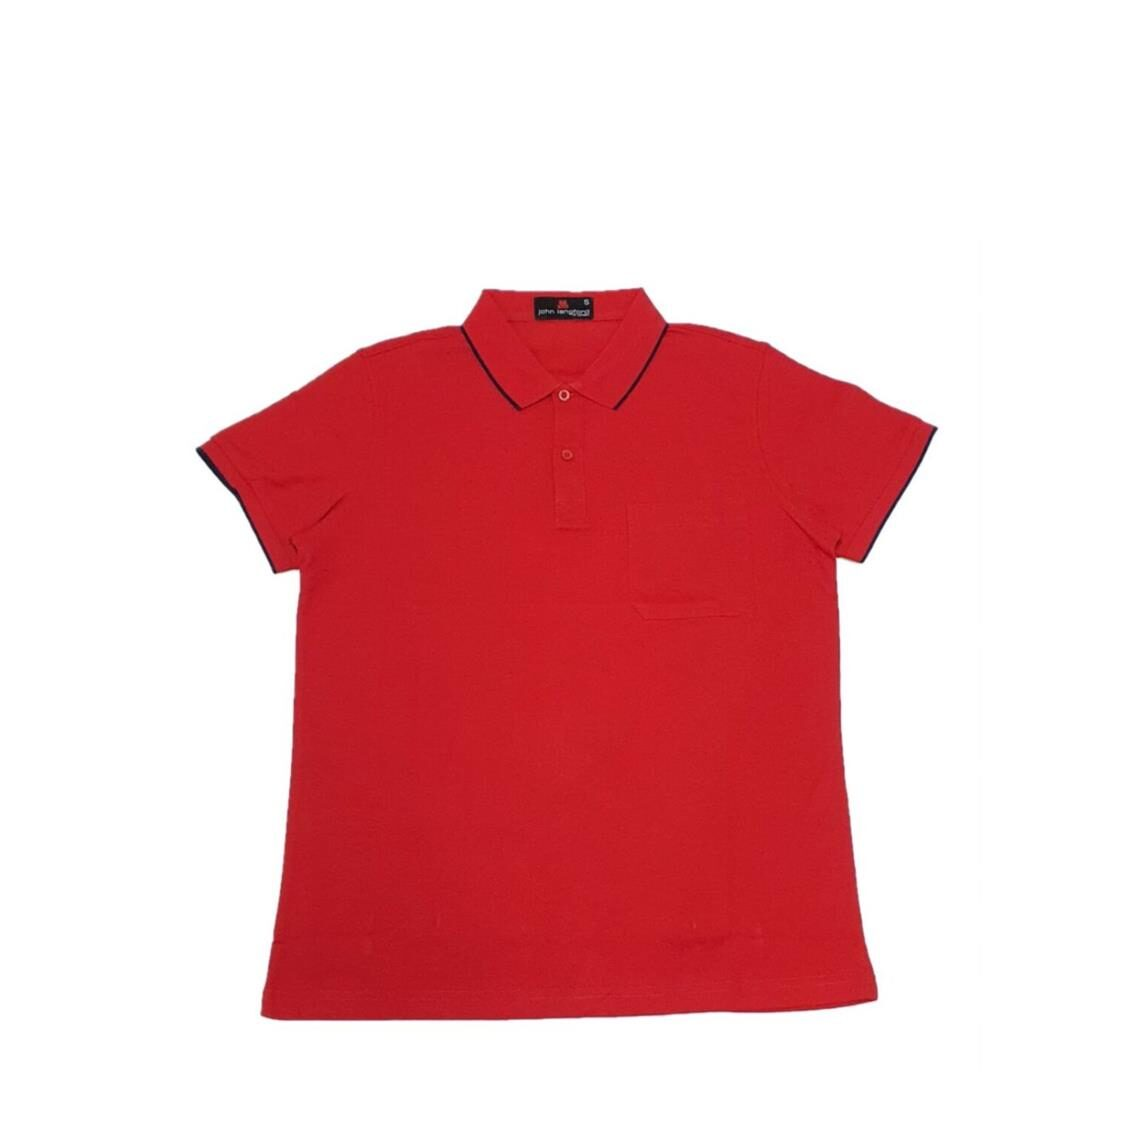 John Langford Polo T-Shirt with Pocket Red